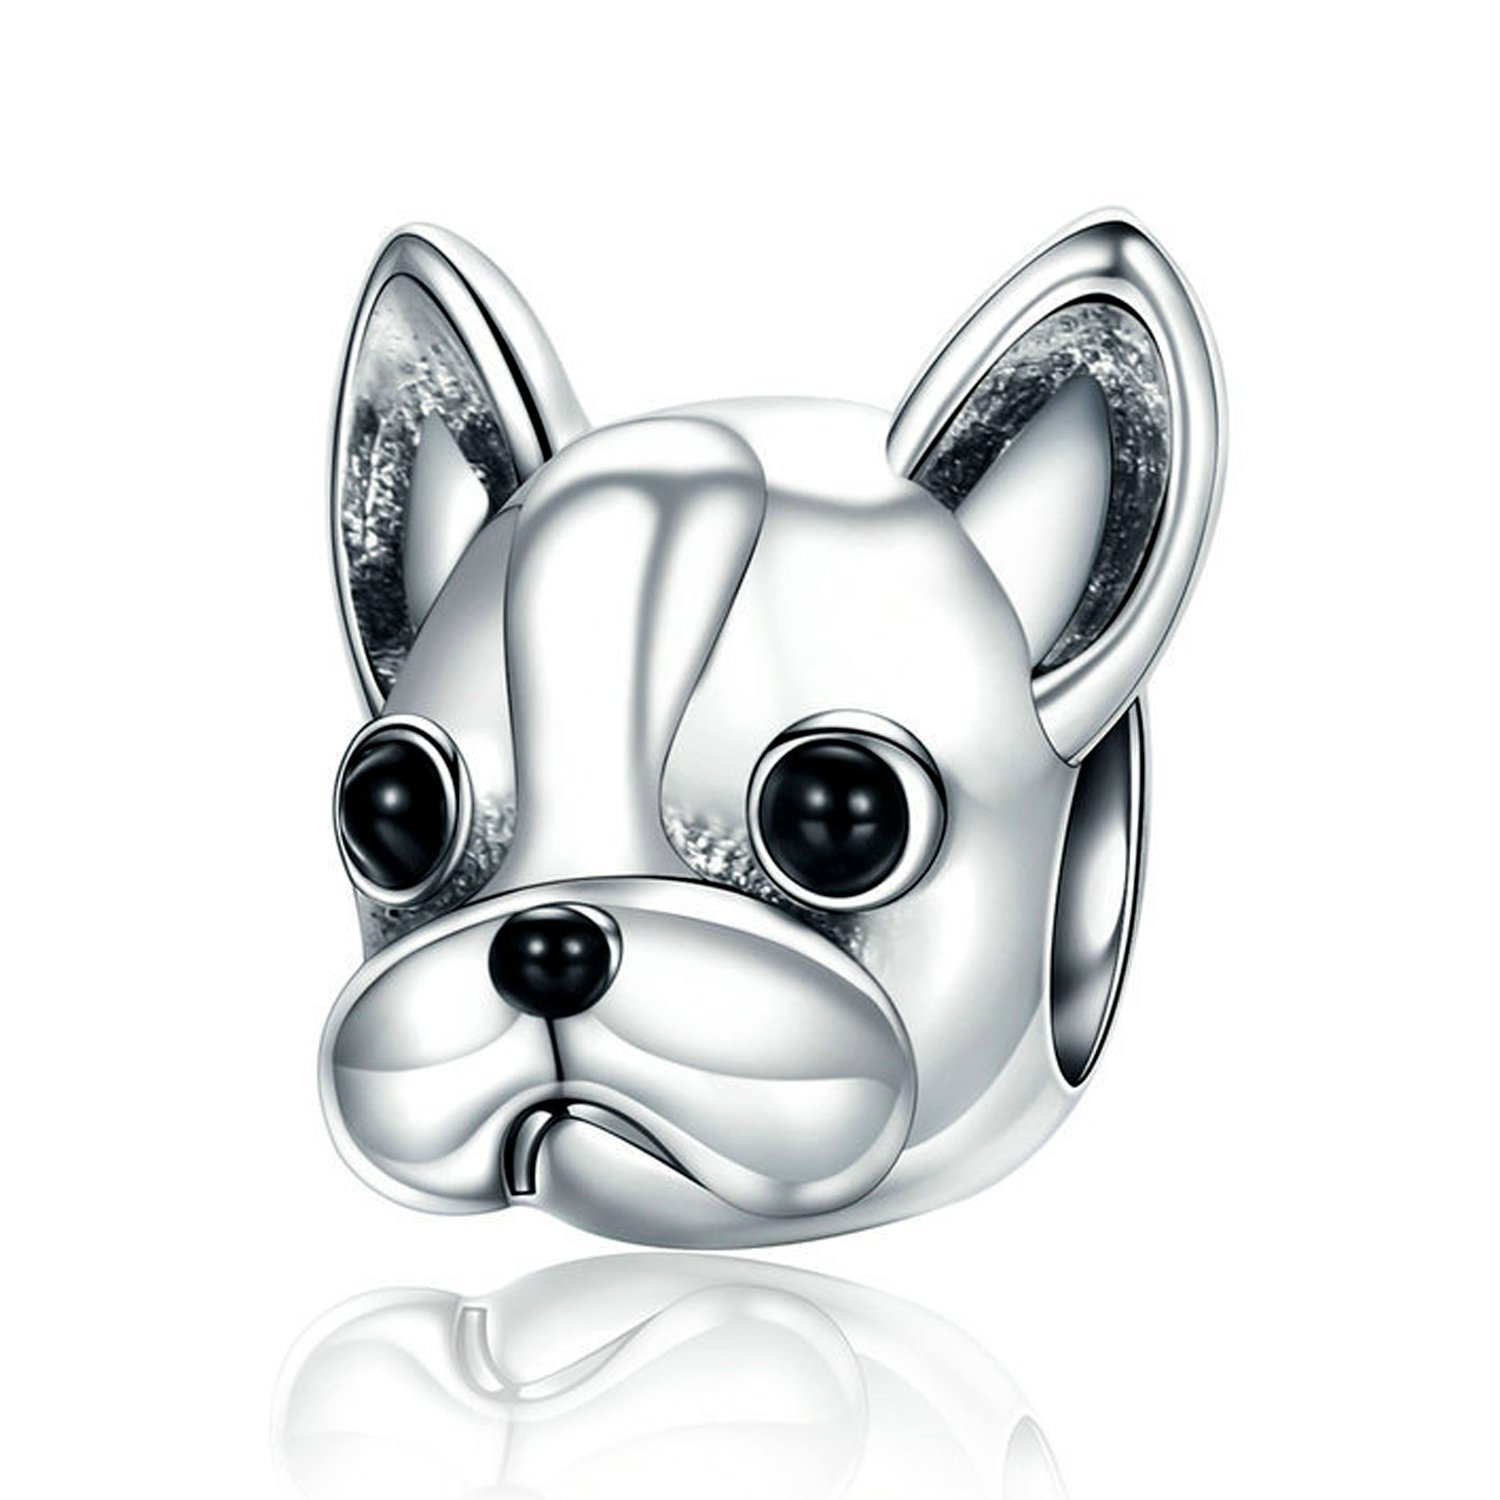 XingYue Jewelry 925 Sterling Silver Bulldog Bead Charms Puppy Dog Animal Vintage Charms Fit European Snake Chain Bracelet (Bulldog charm)